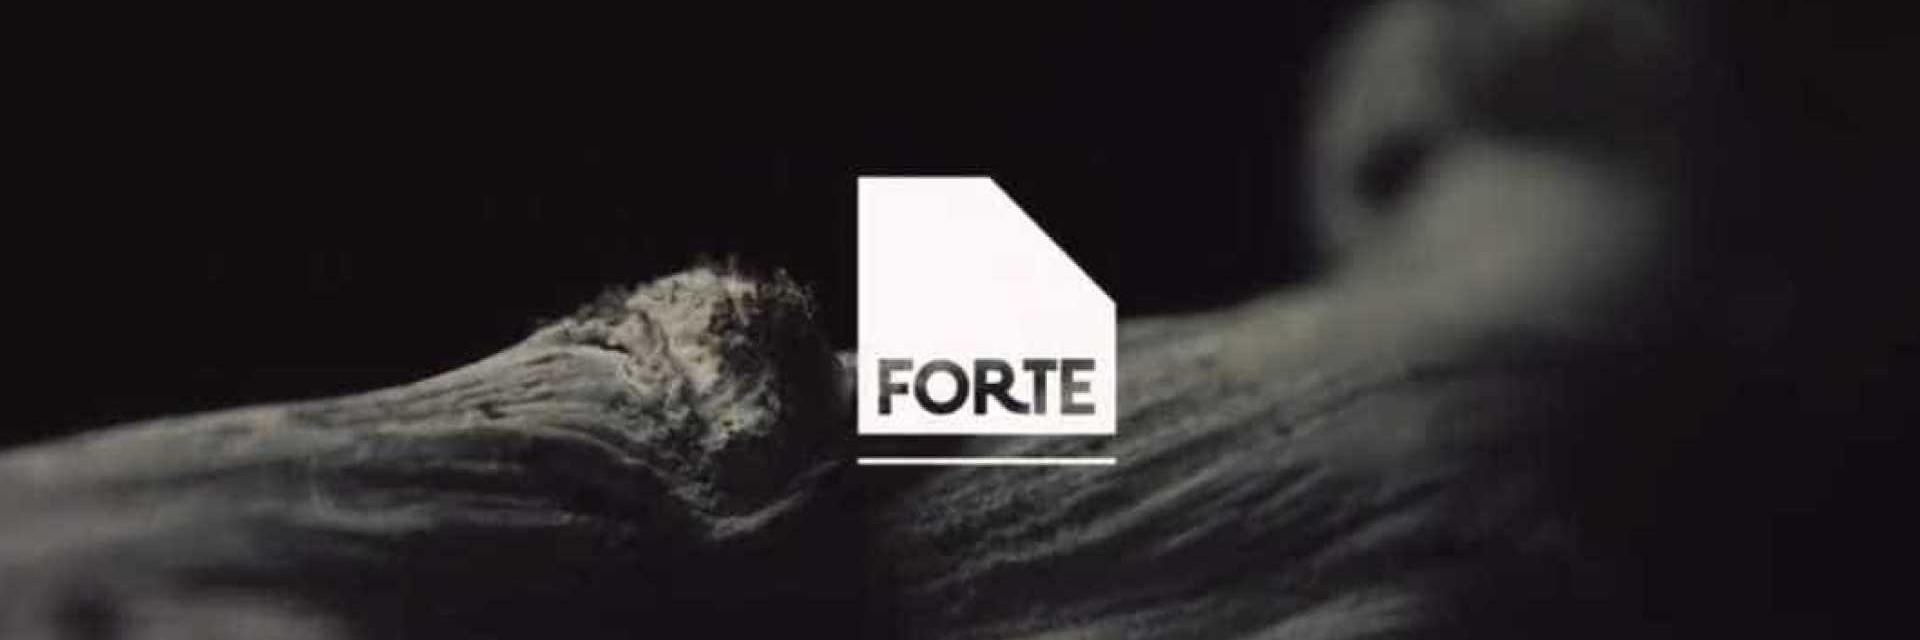 Festival Forte, Portugal - Aug 28-Sep 2 2018